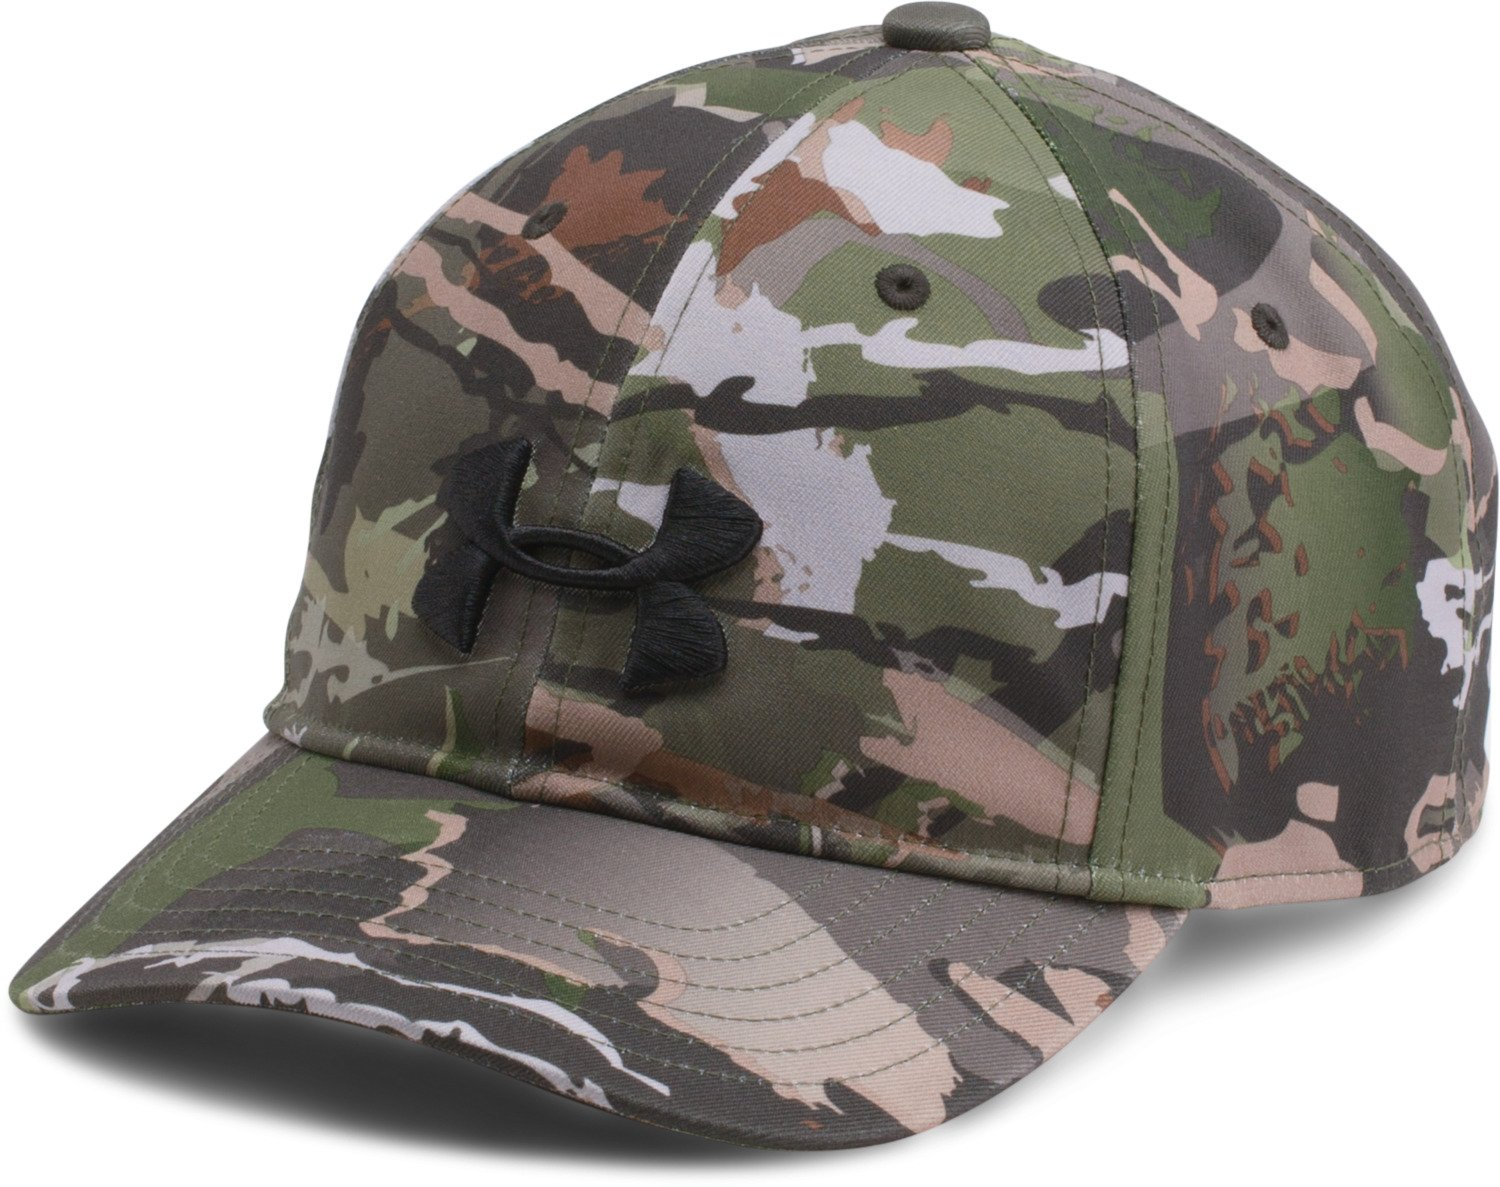 8081d0f92c3 Display product reviews for Under Armour Boys  Camo 2.0 Cap